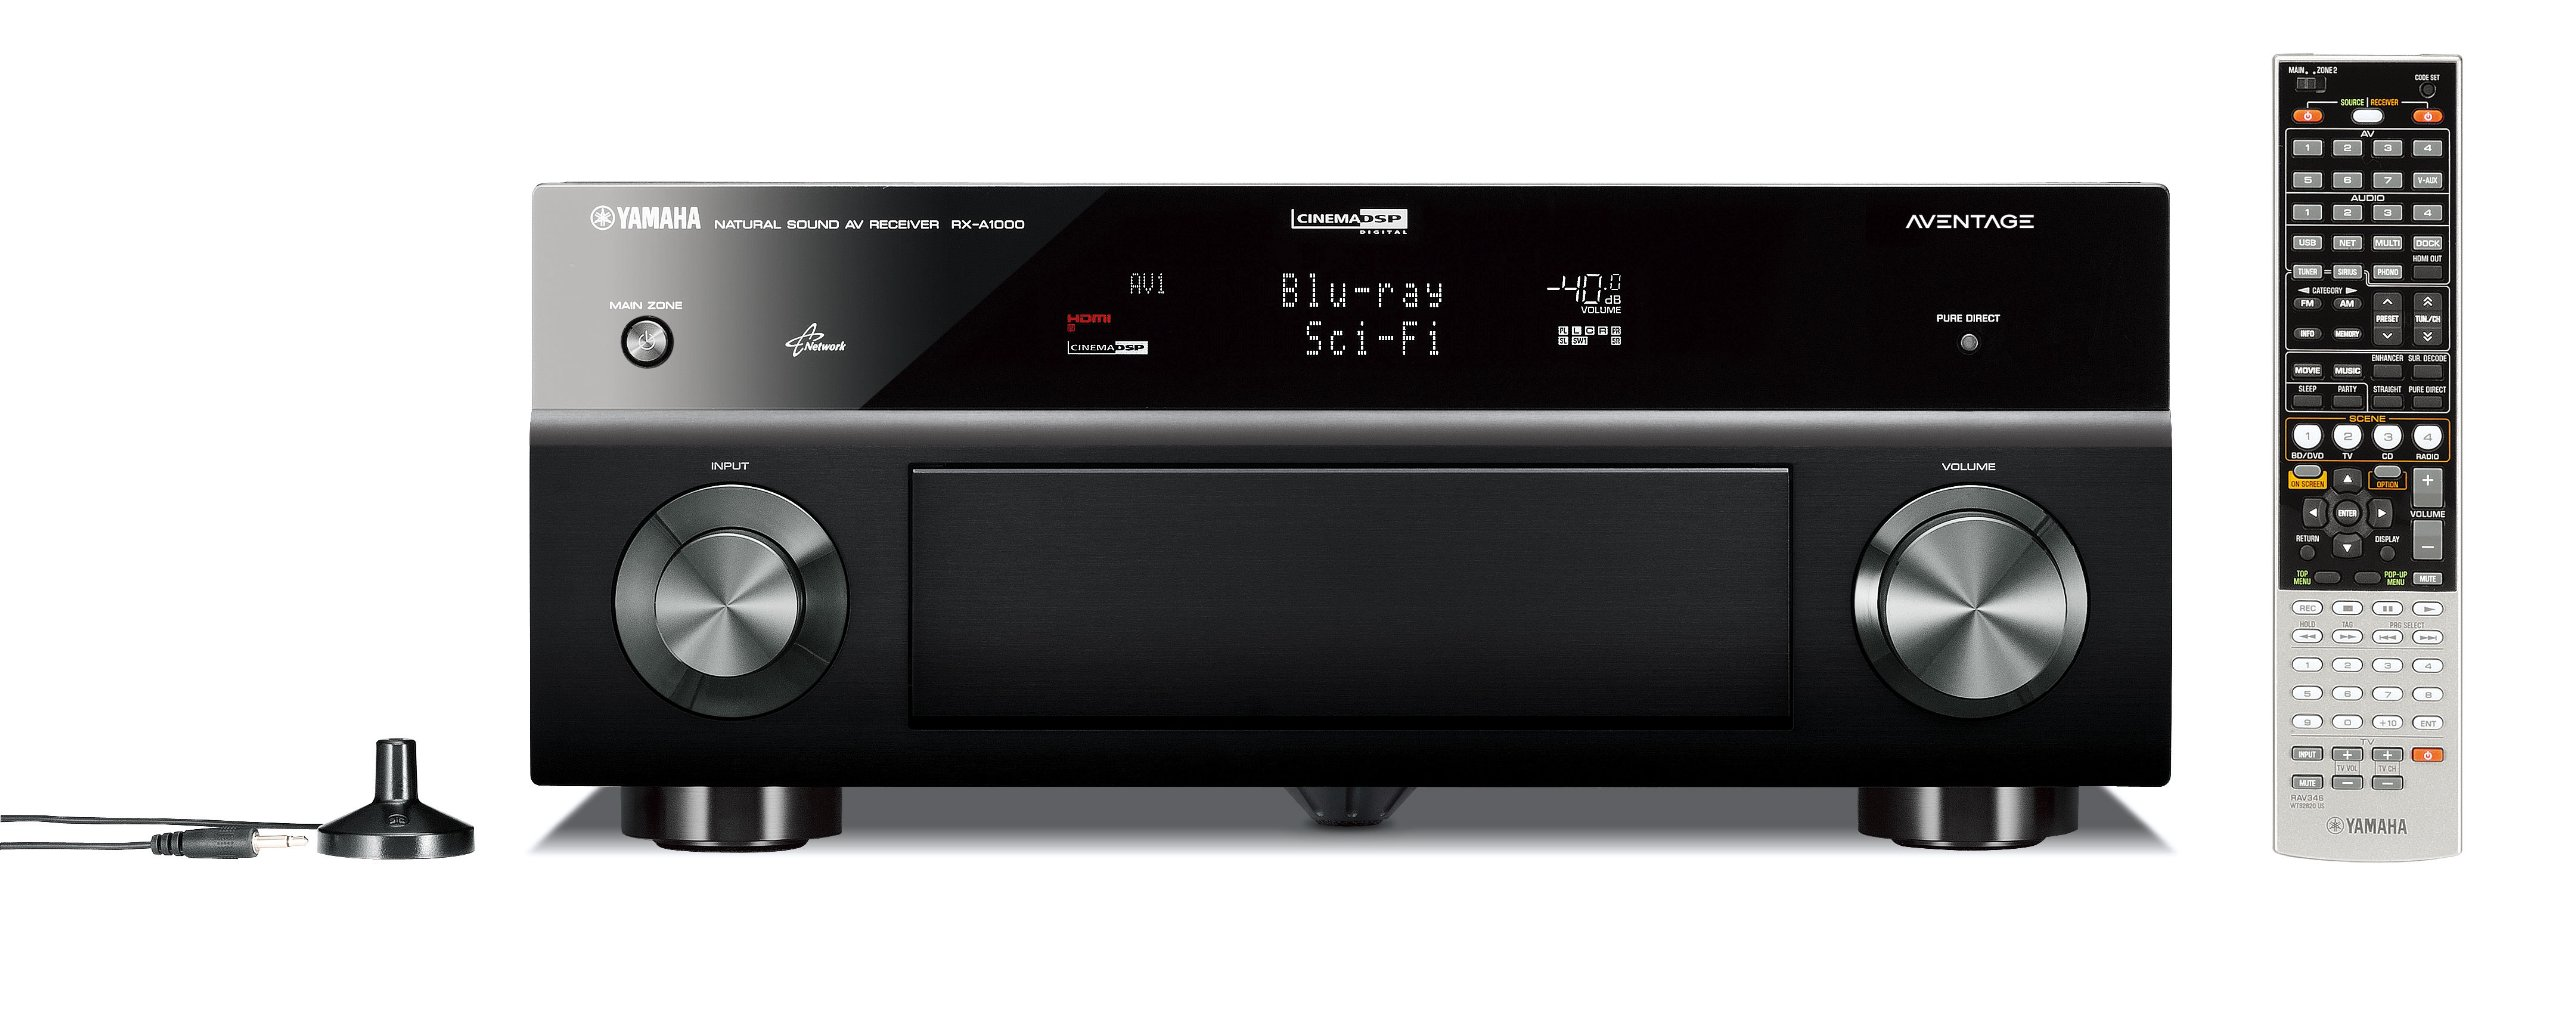 Yamaha RX-A1000 7.1-Channel Home Theater Receiver (OLD VERSION) (Discontinued by Manufacturer) by Yamaha (Image #1)